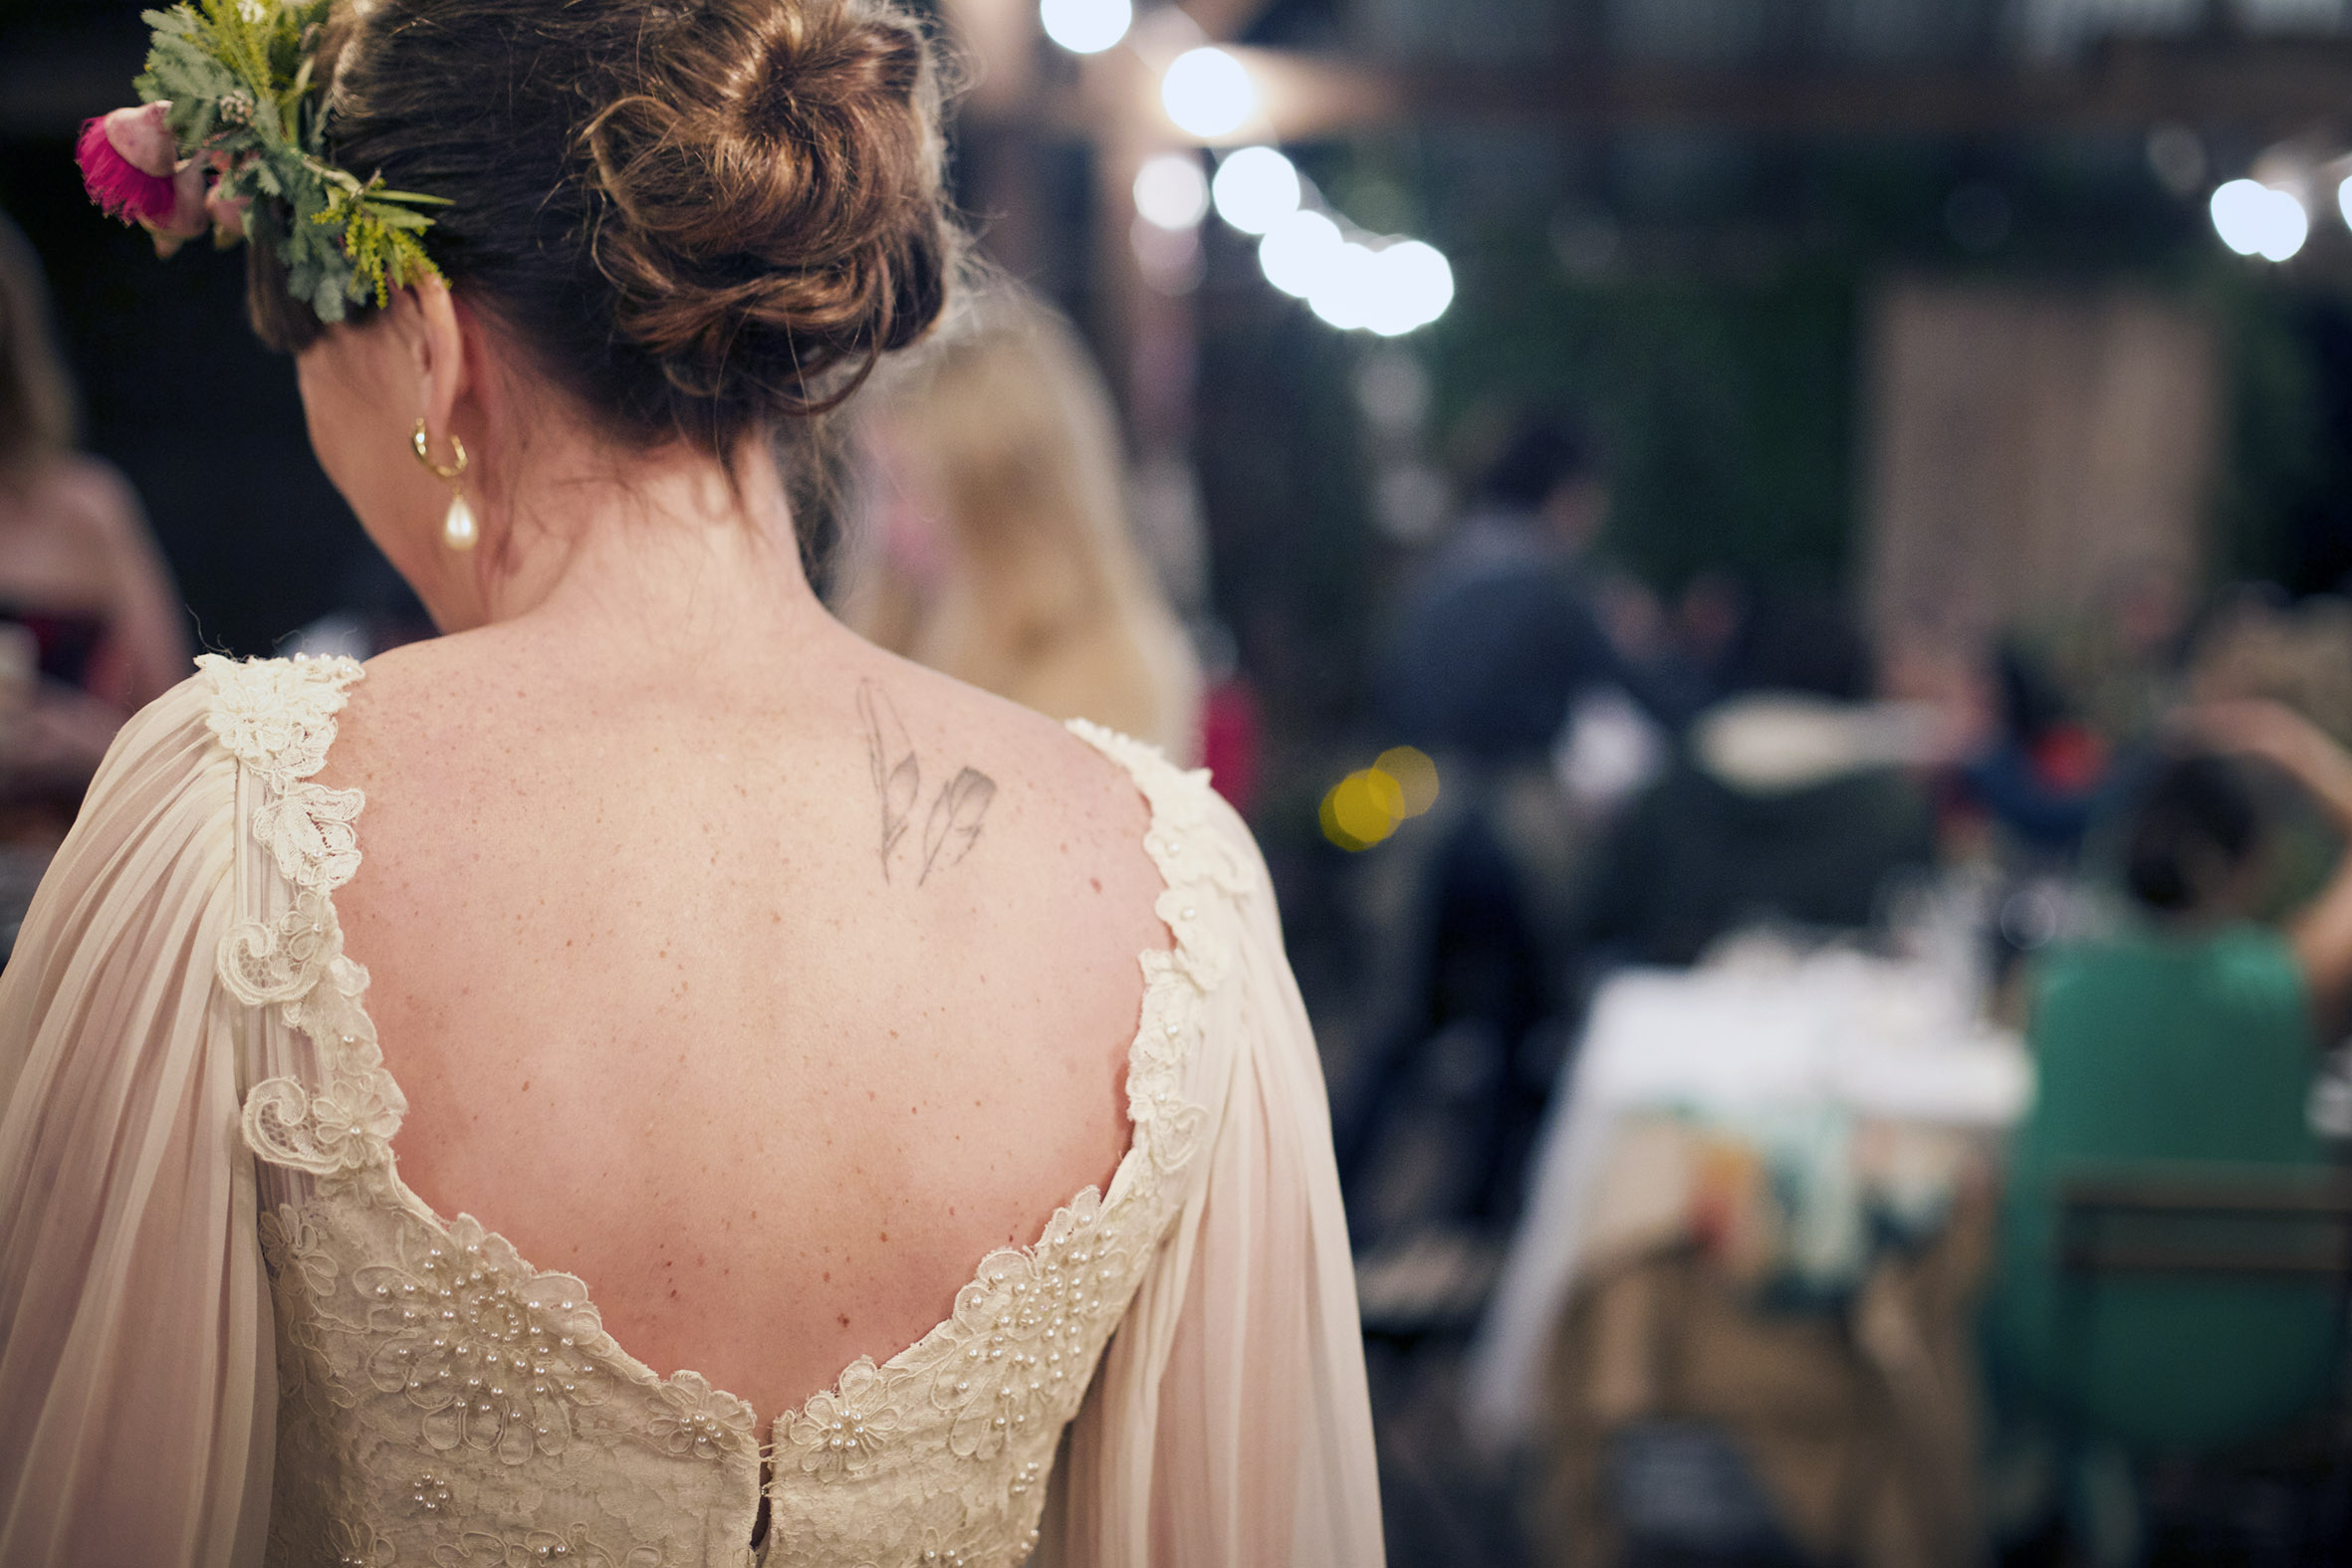 melbourne farm wedding 4.jpg